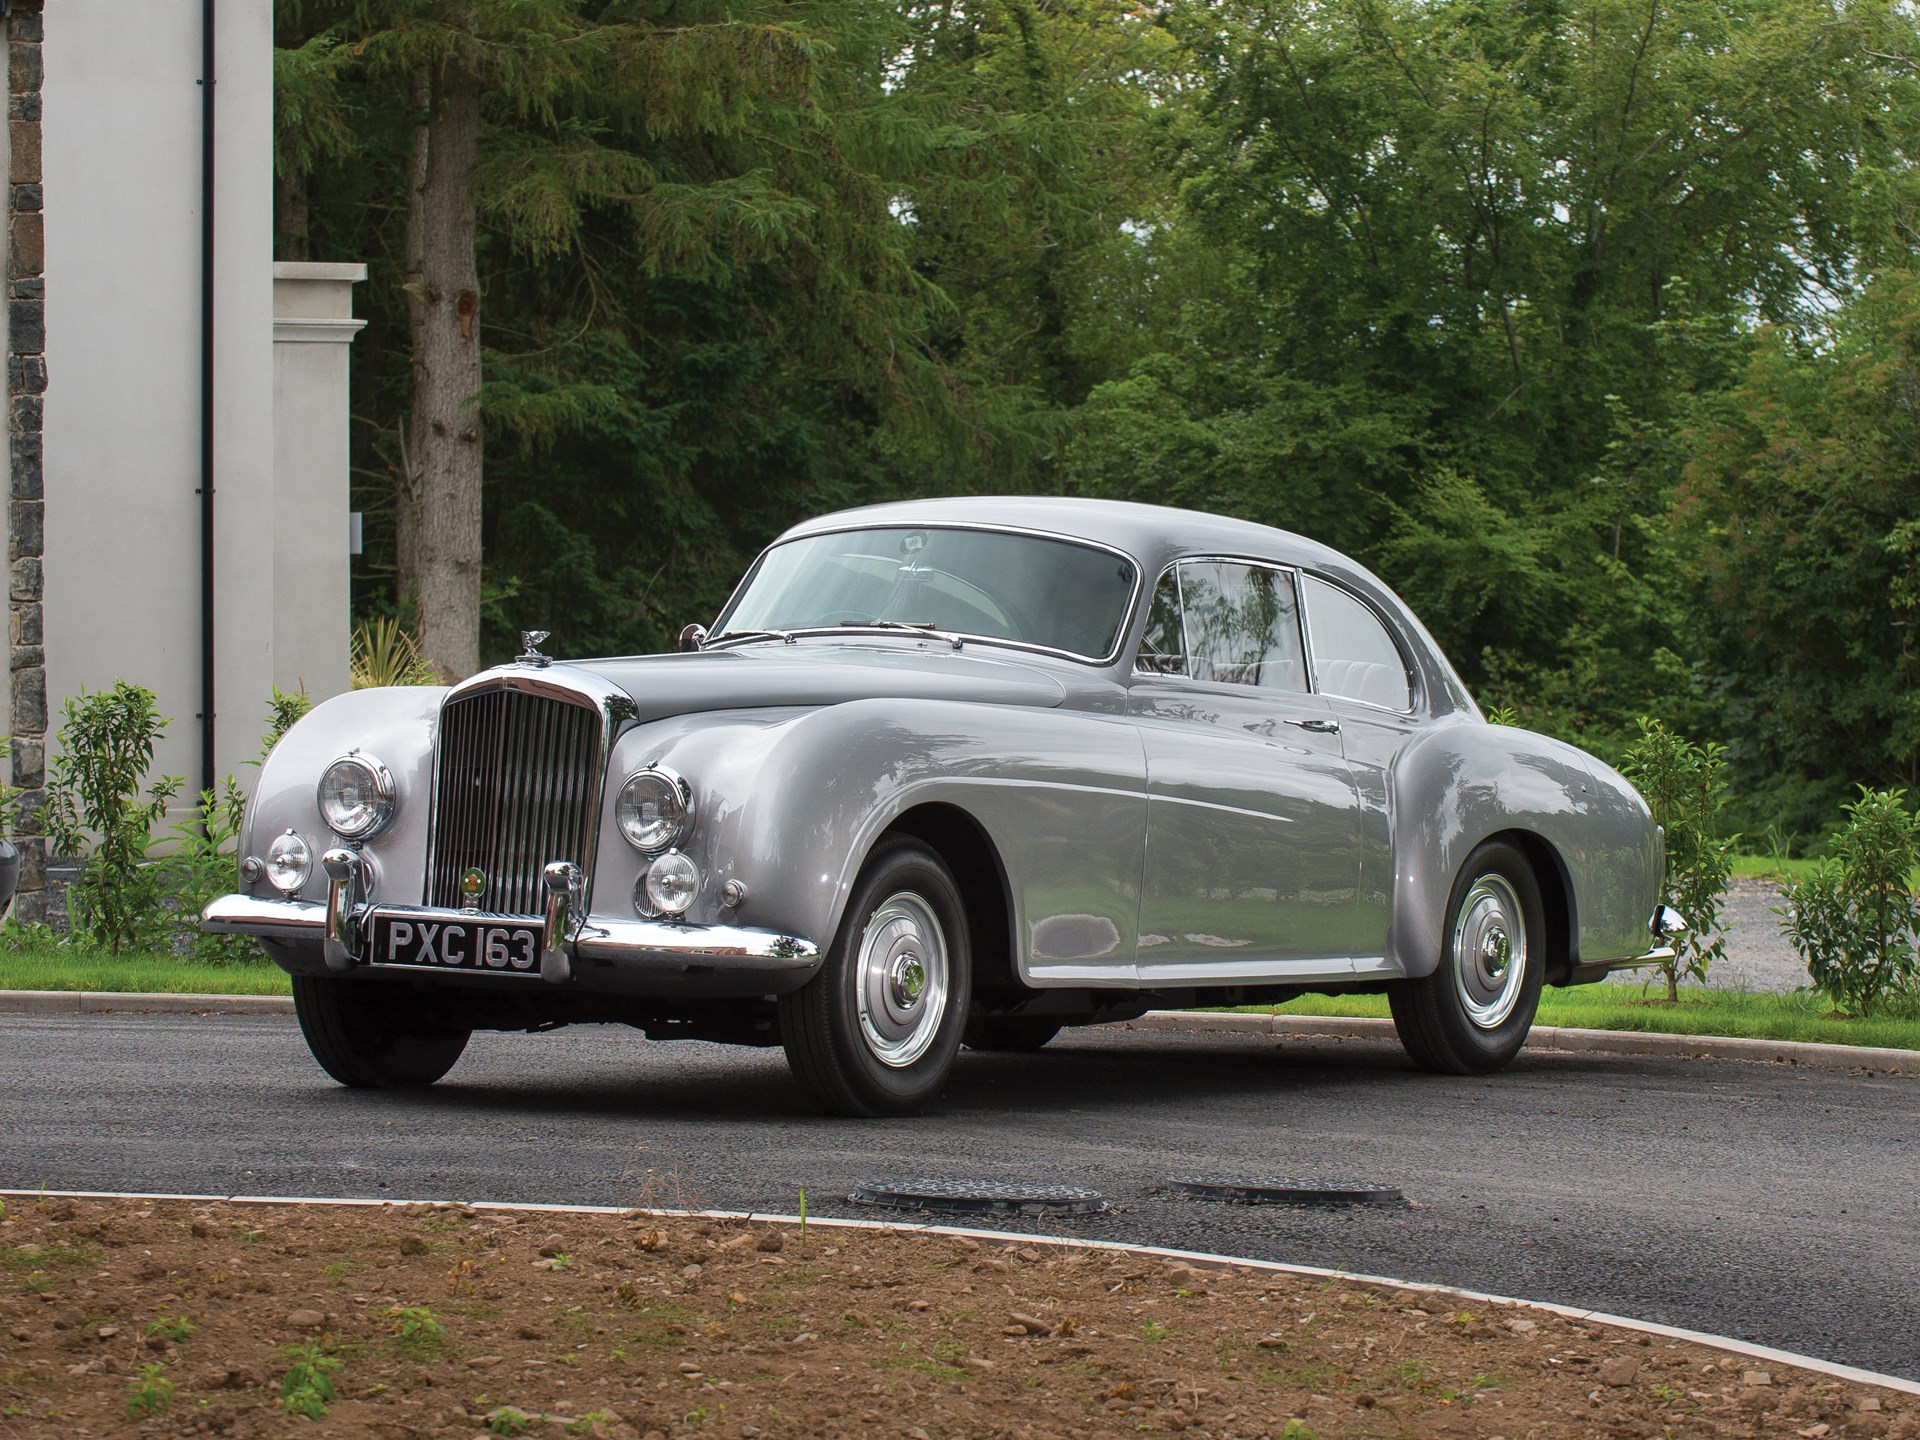 1955 Bentley R-Type Continental Fastback Sports Saloon by H.J. Mulliner